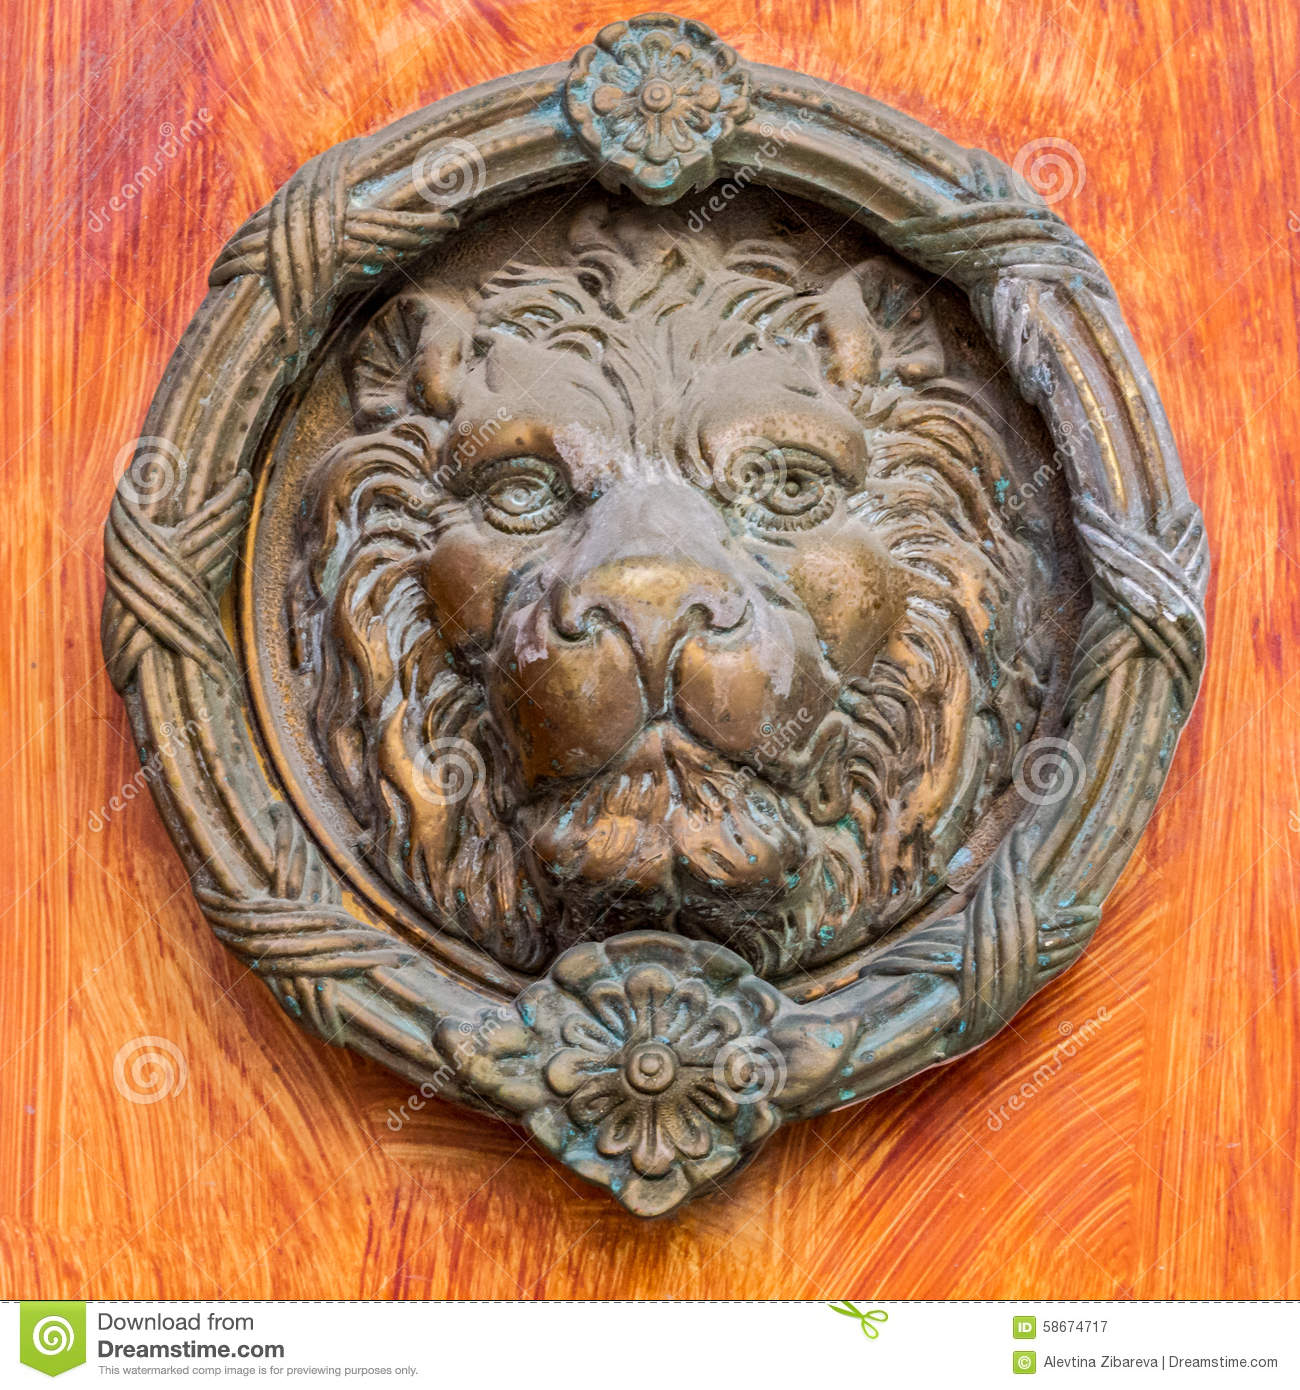 Vintage brass door knocker - lion head - Vintage Brass Door Knocker - Lion Head Stock Image - Image Of